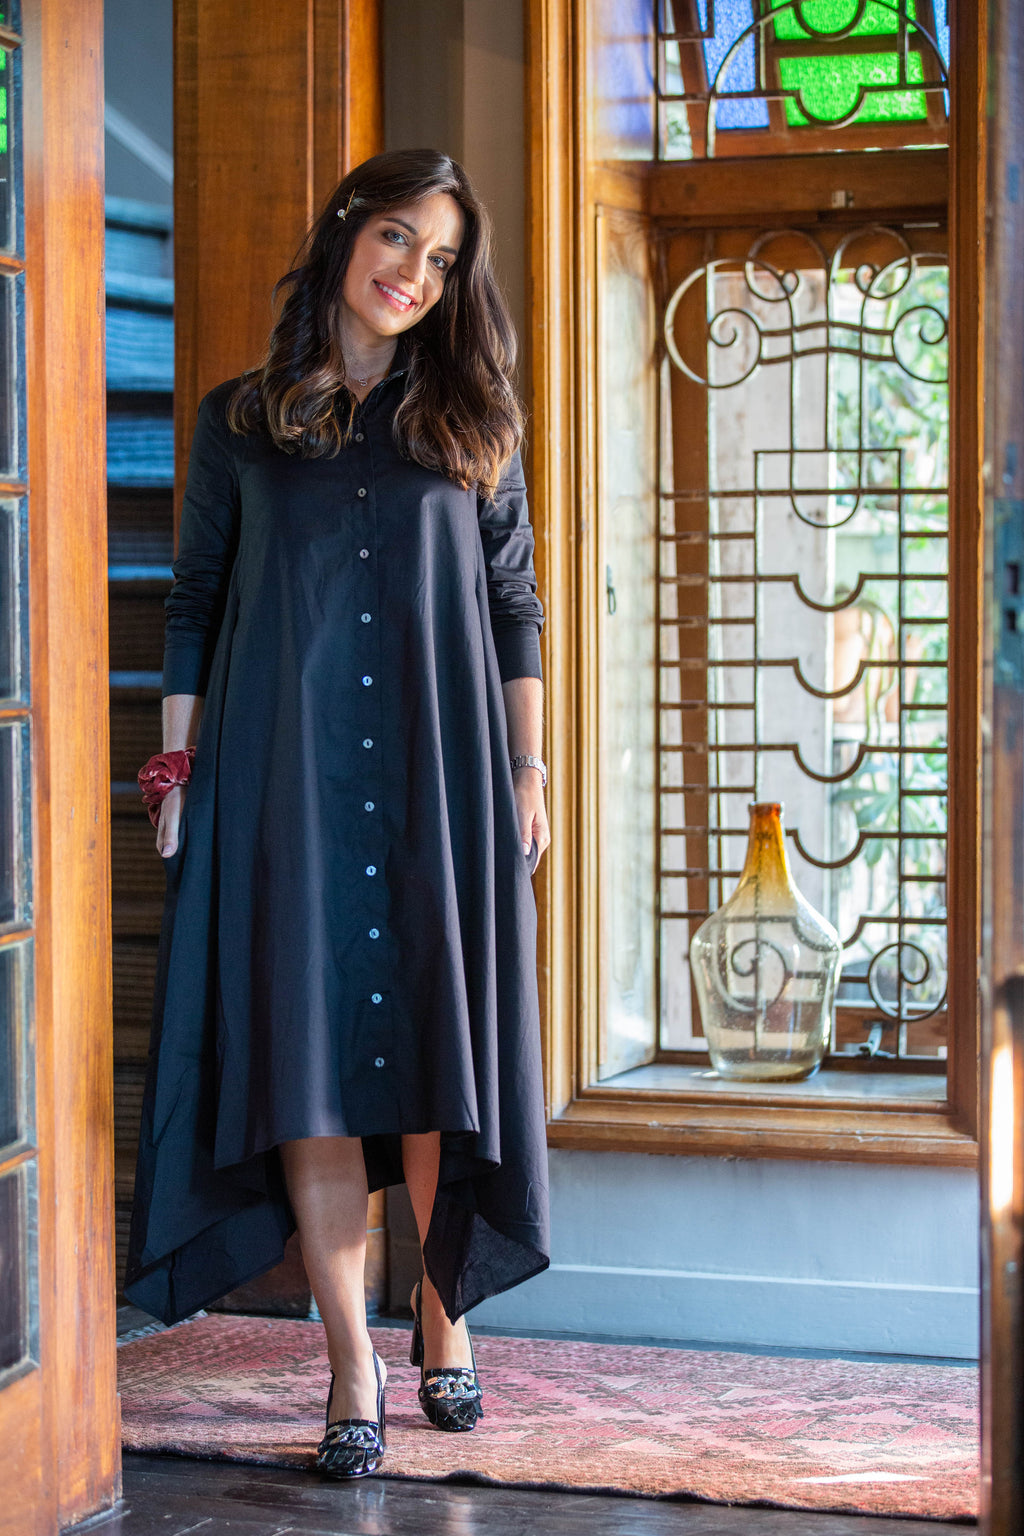 Chaya Dress - Sarah Feldman Modest Clothing